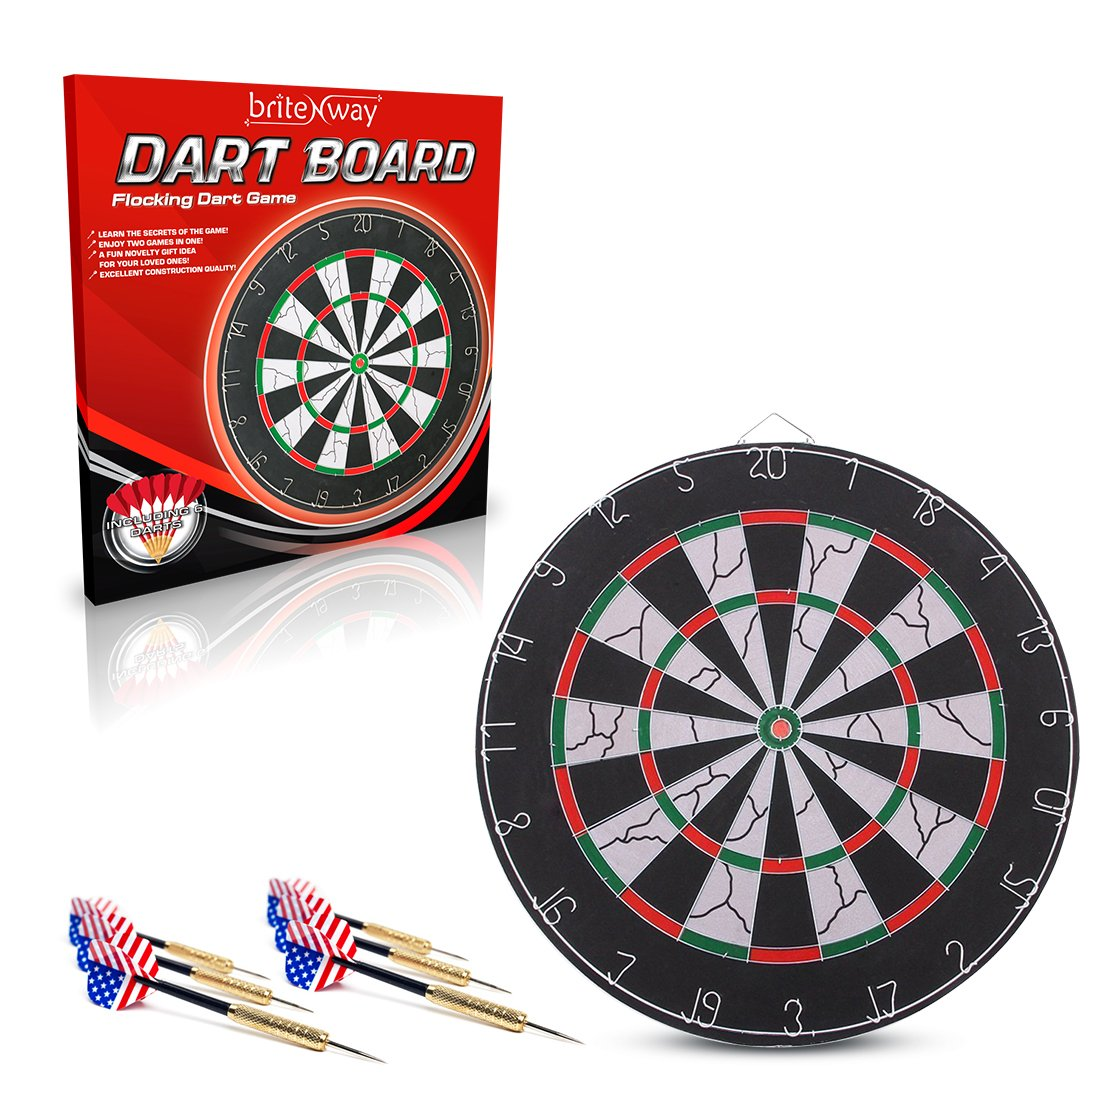 Premium Quality 18-Inch Champion Tournament Dart Board -6 Metal Darts included – Made Of Wood & Metal – Double-Sided Flocking Dartboard – Sturdy & Durable - Ideal For Beginners' Training & Practice